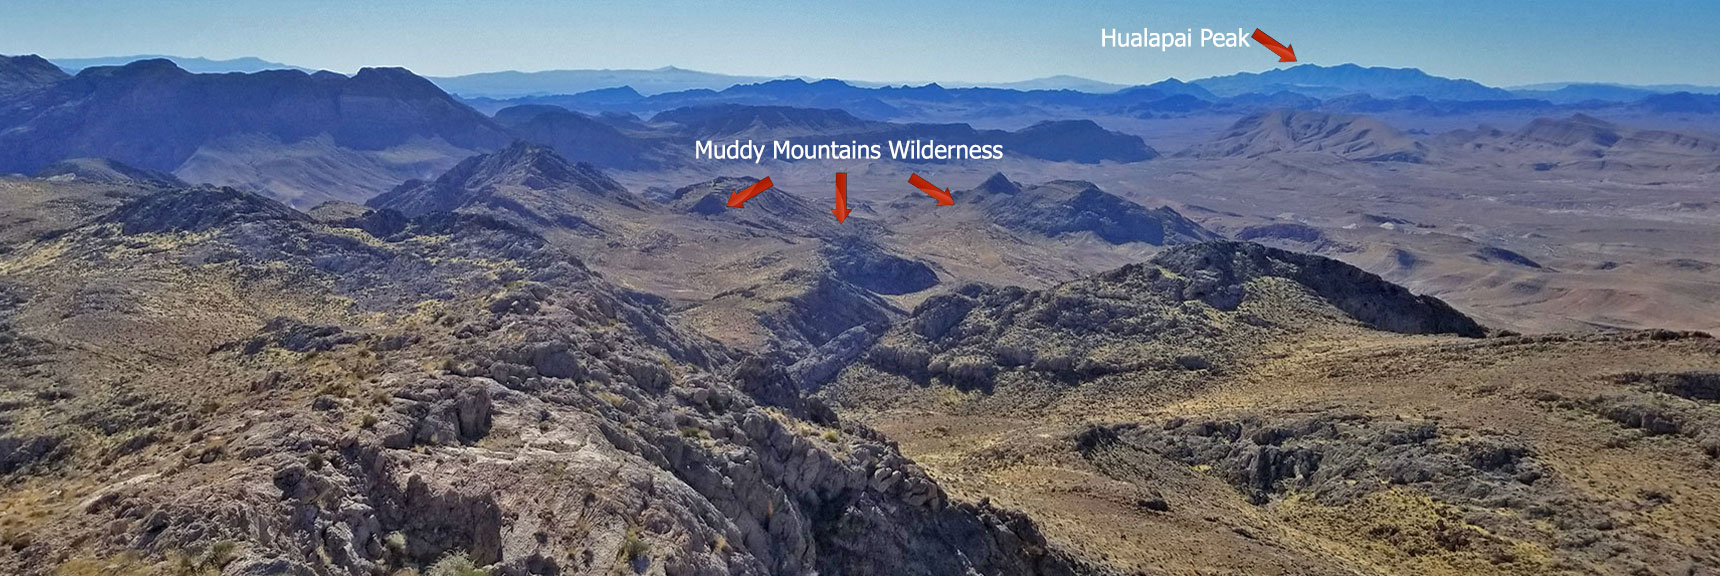 Muddy Mountains Wilderness NW High Point Panorama Slide 6